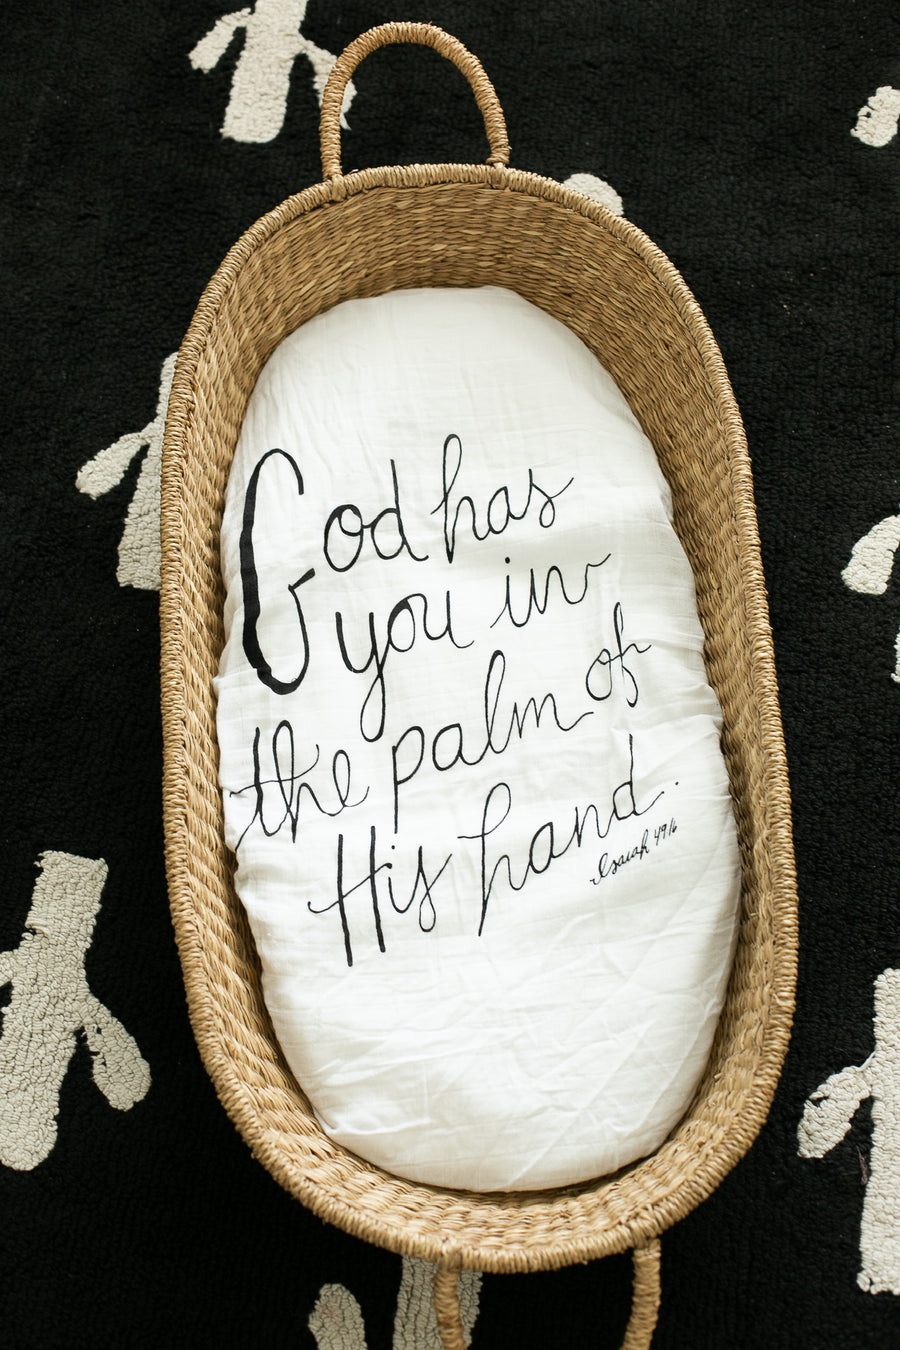 Versatile Moses Basket / Bassinet / Small Changing Pad Sheet -  Isaiah 49:16 (God has you in the palm of His hand)